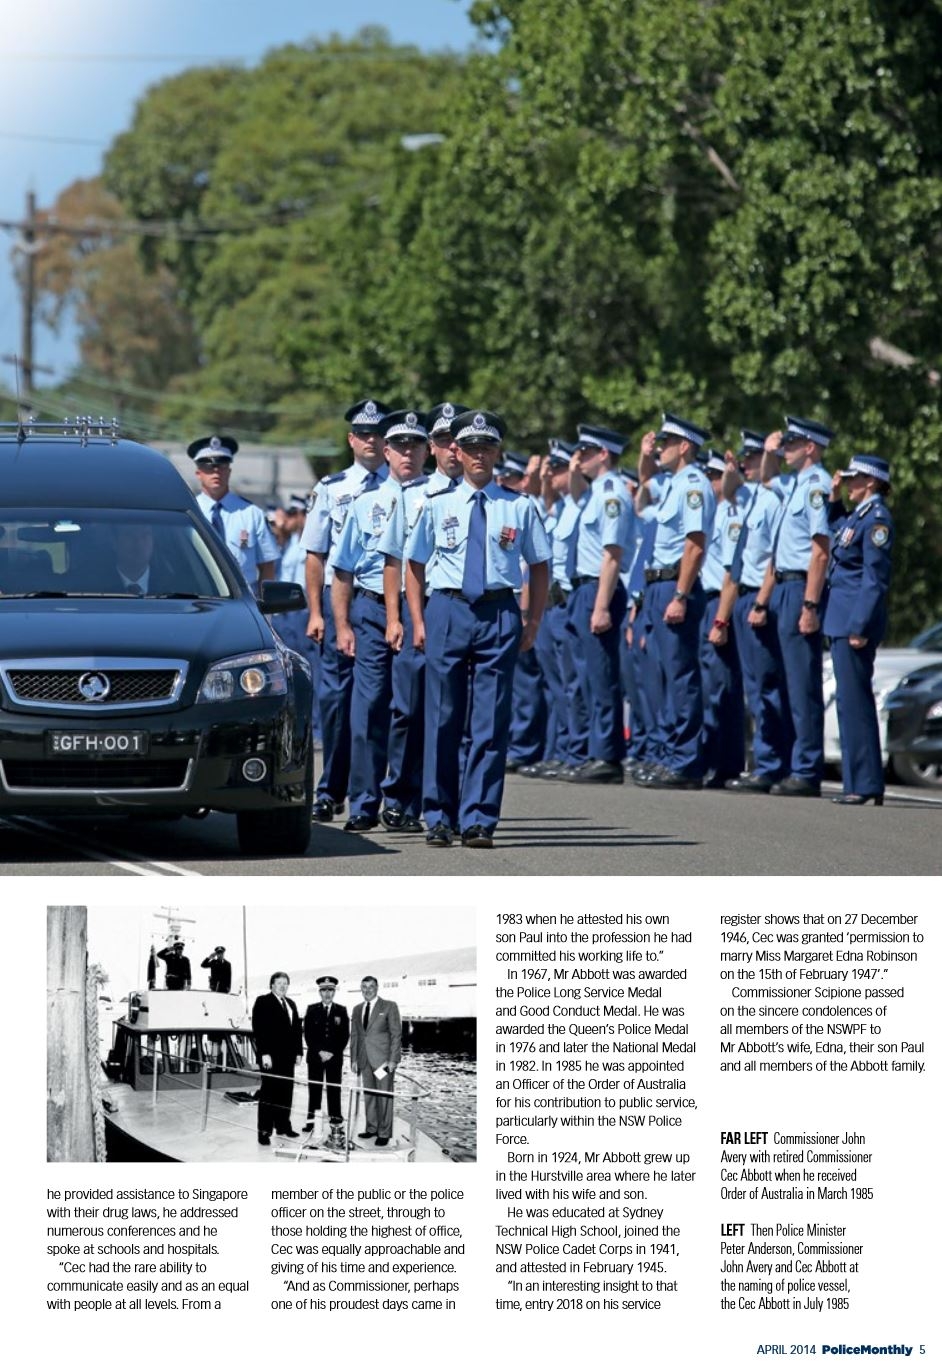 Police Monthly - April 2014 - page 5